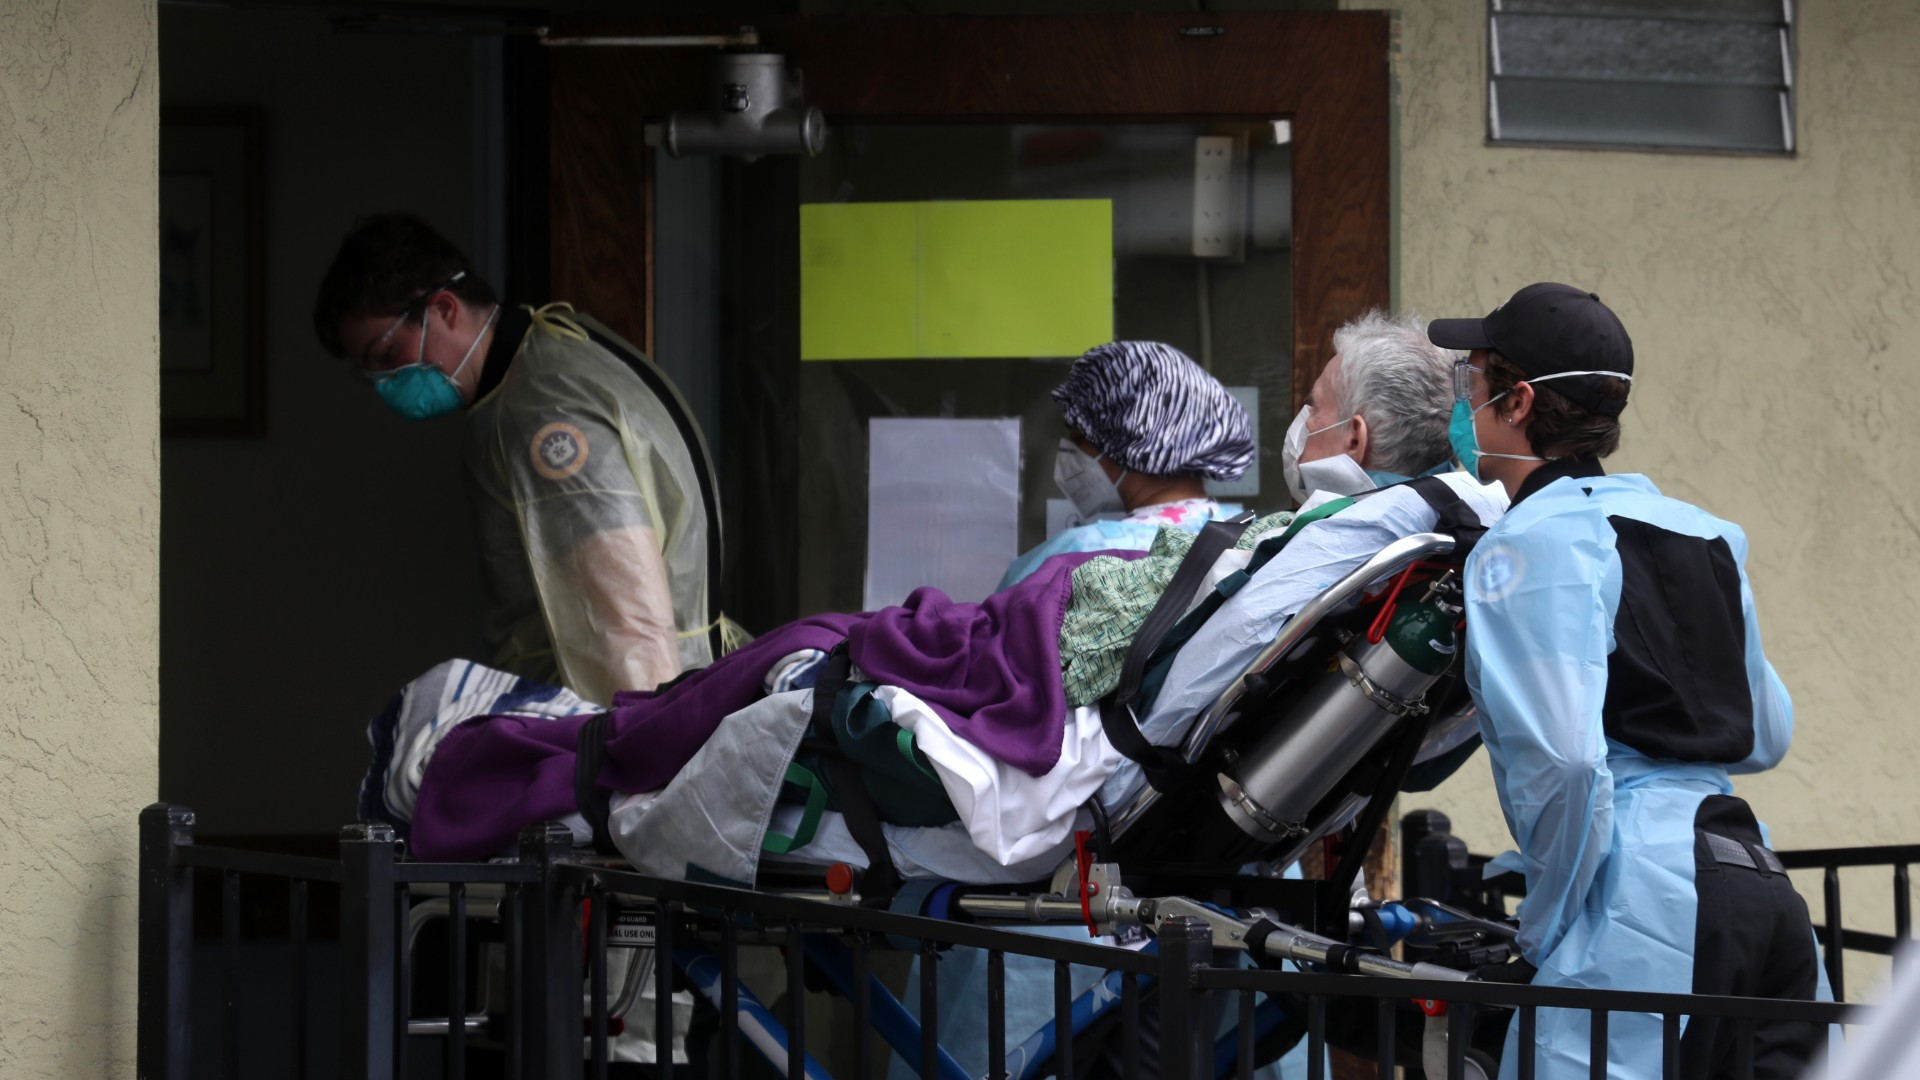 Emergency medical technicians with Royal Ambulance move a patient on a gurney from an ambulance into the Gateway Care and Rehabilitation Center on April 16, 2020 in Hayward, California. (Justin Sullivan/Getty Images)